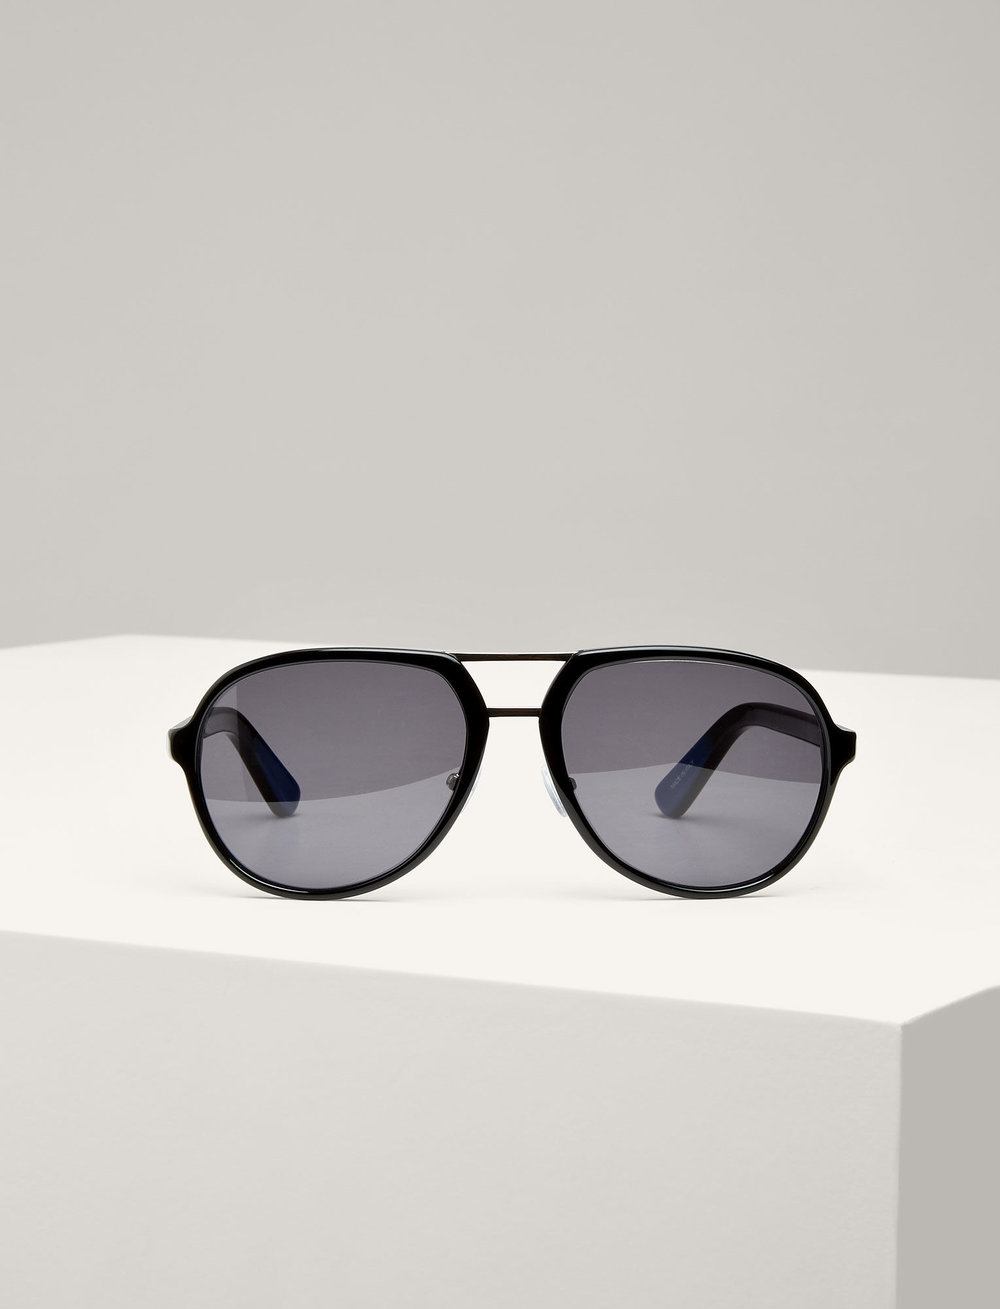 JOSEPH-Acetate+Metal-Duke-Sun-Eyewear-Black-dl0060010010-1.jpg